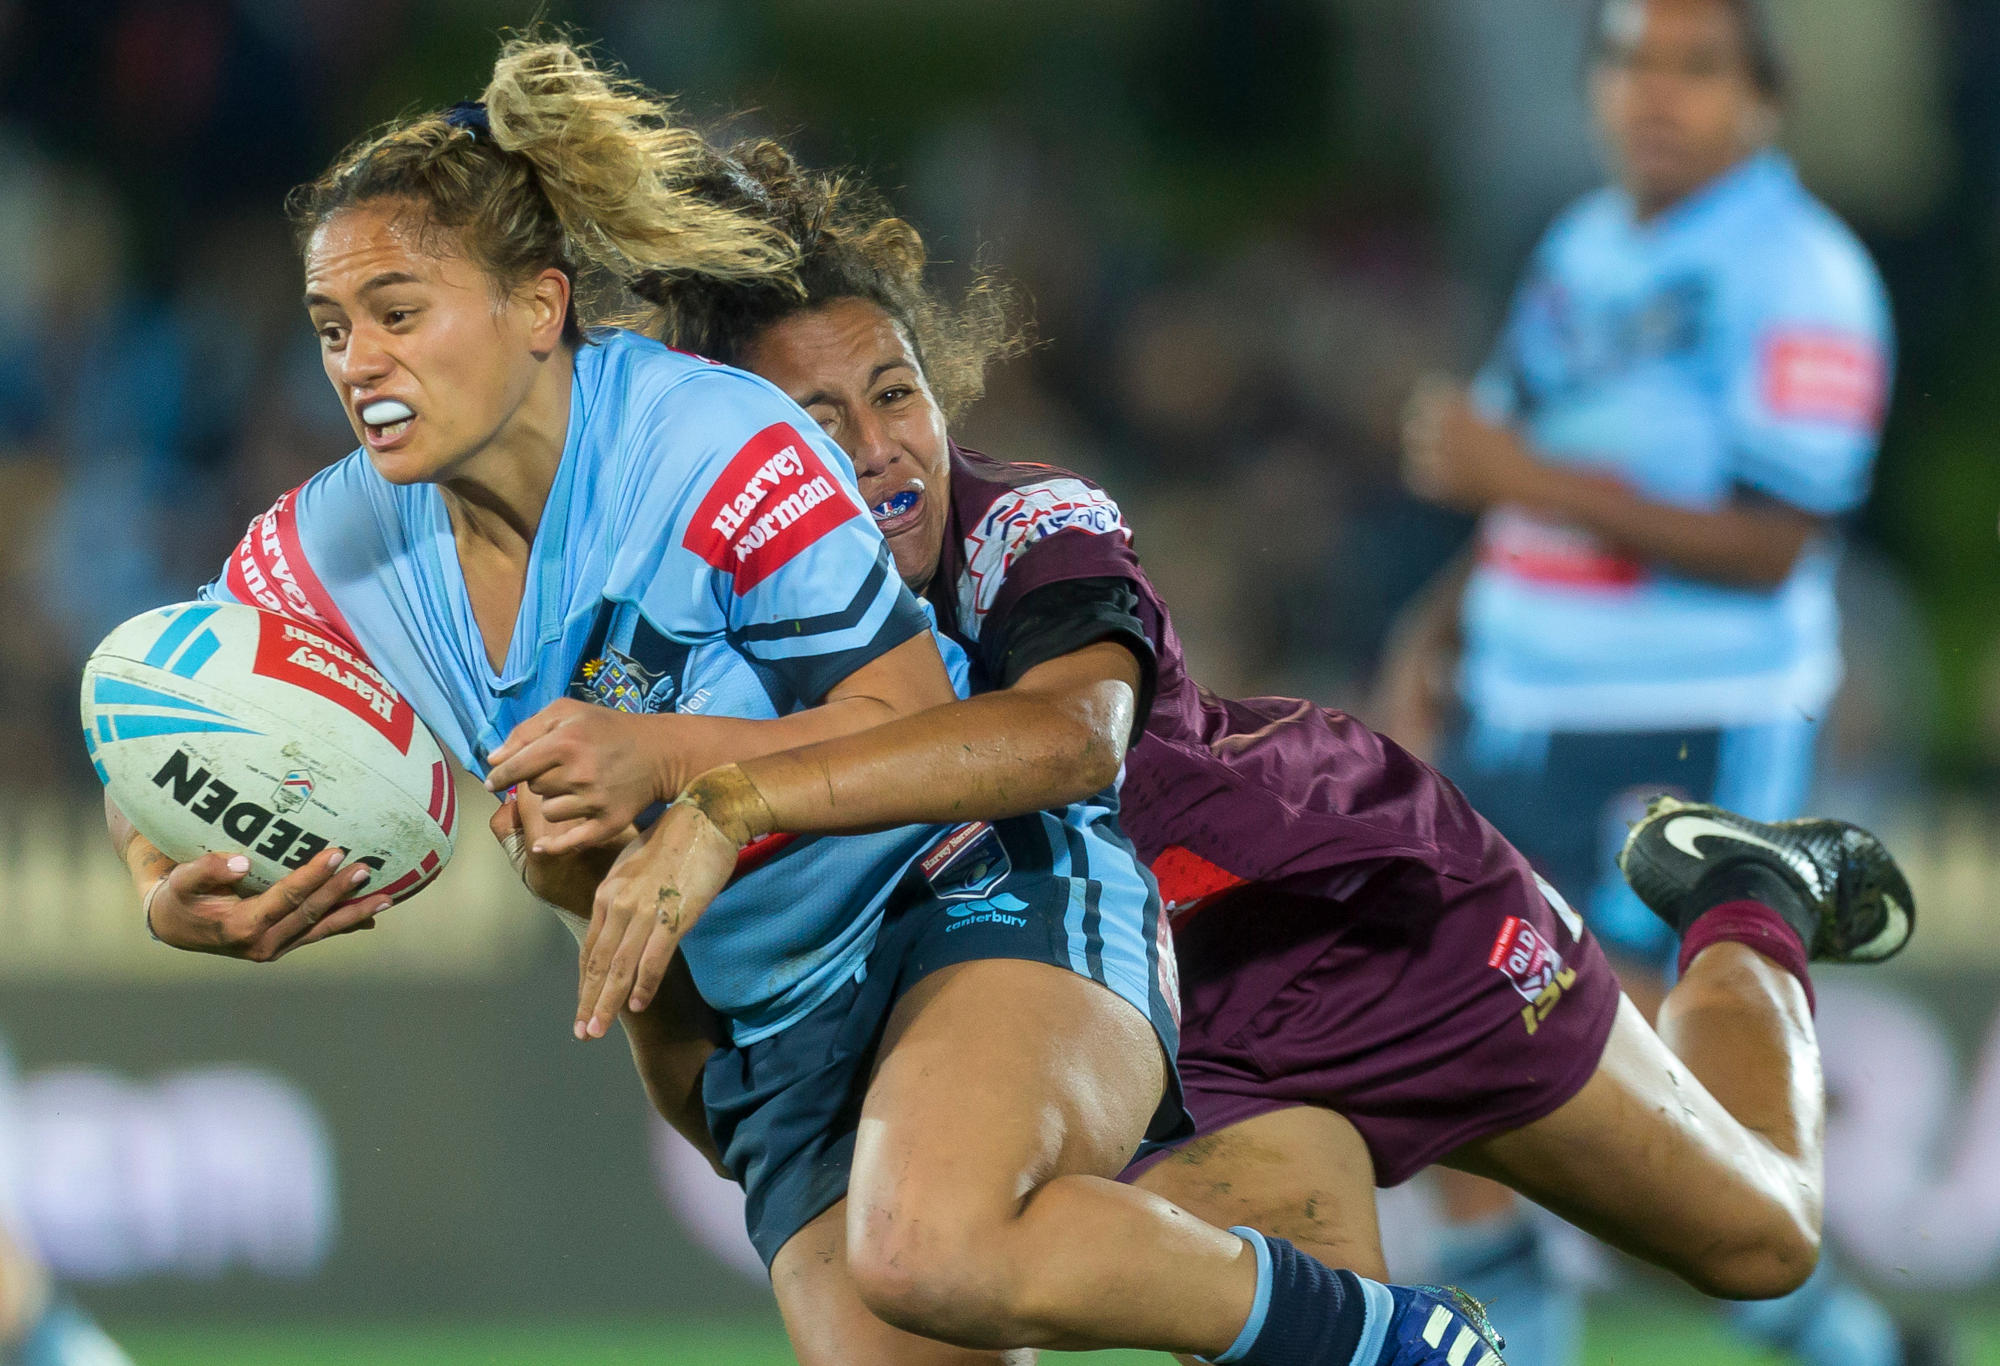 Tallisha Harden of the Maroons tackles Nita Maynard of the Blues during the Women's State of Origin match.